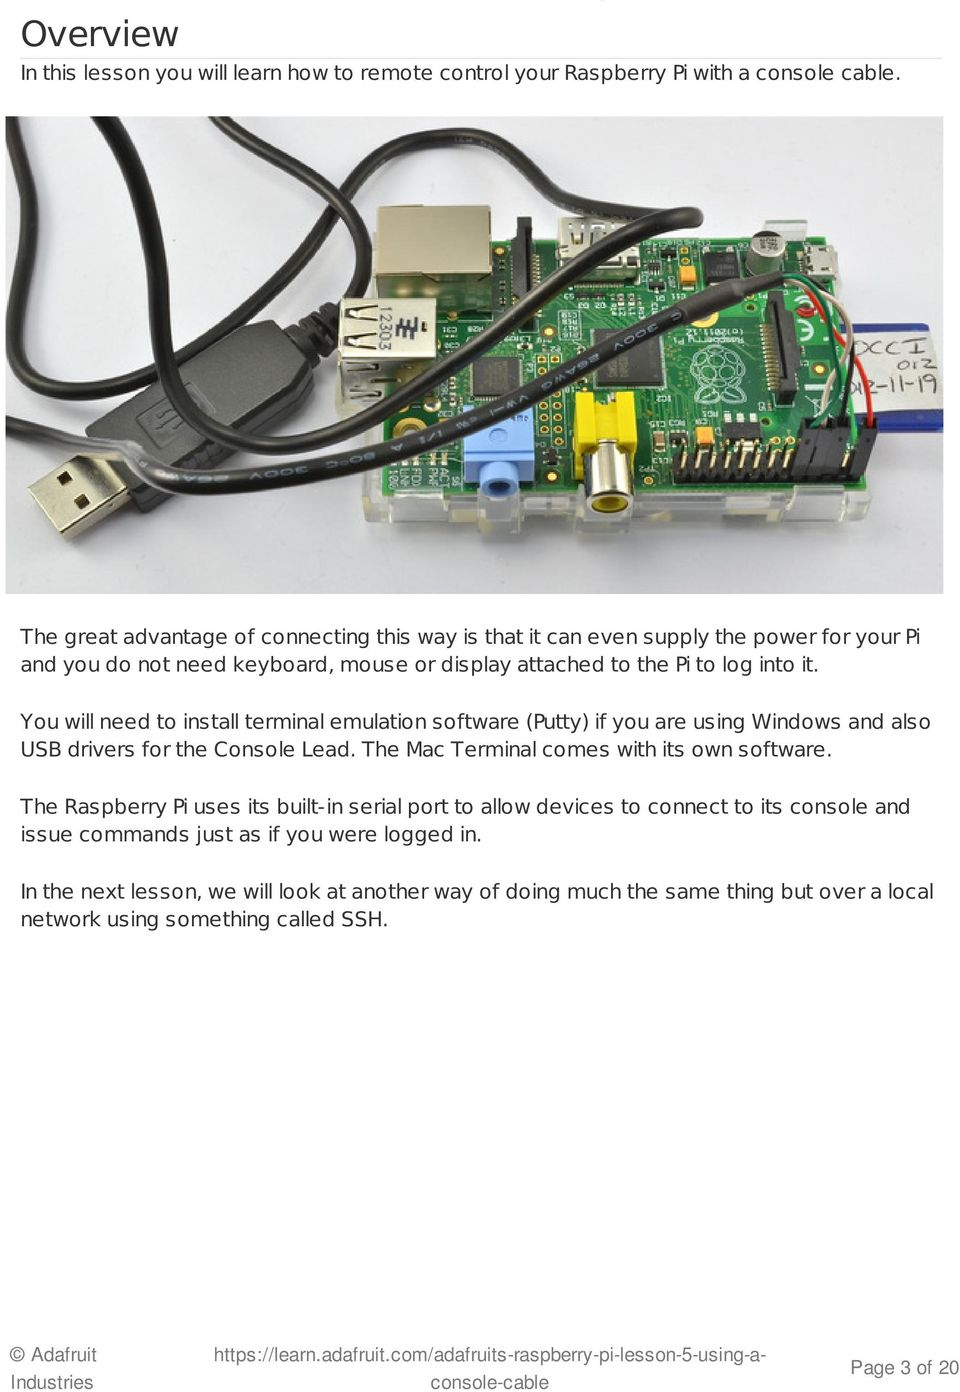 Adafruits Raspberry Pi Lesson 5 Using A Console Cable Pdf Rollover Diagram You Will Need To Install Terminal Emulation Software Putty If Are Windows